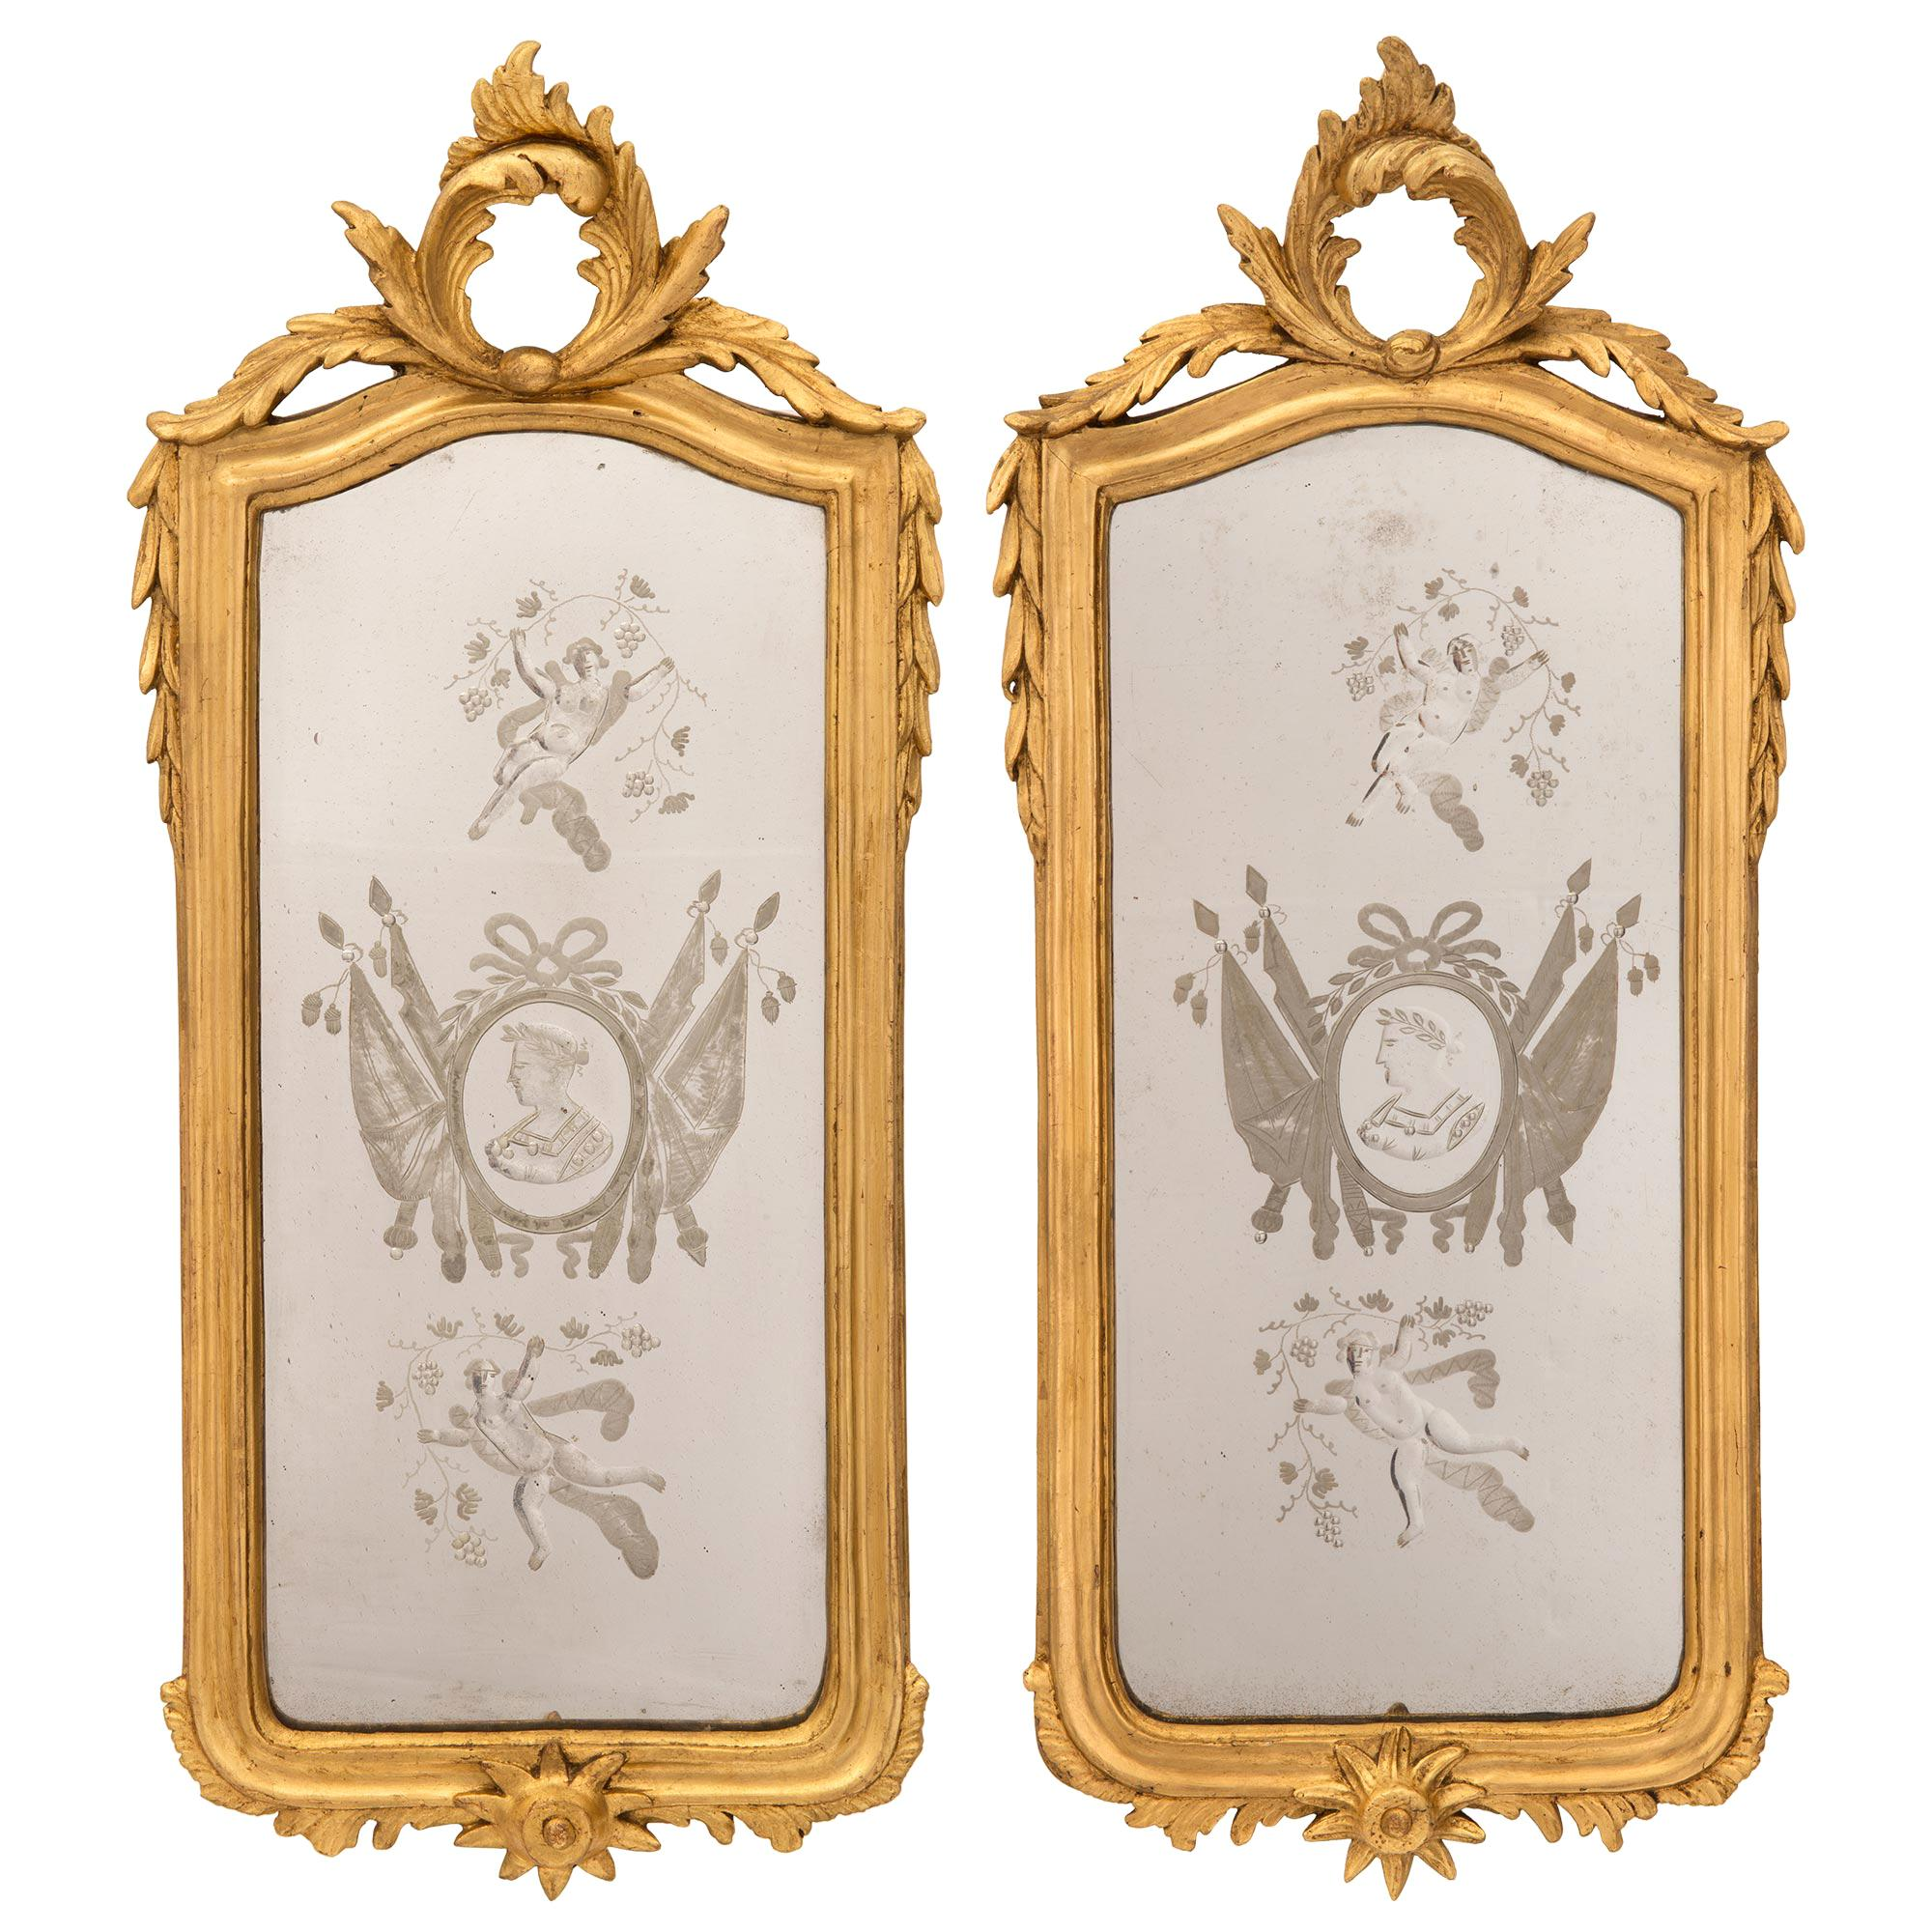 Pair of Italian 19th Century Venetian Style Giltwood Mirrors